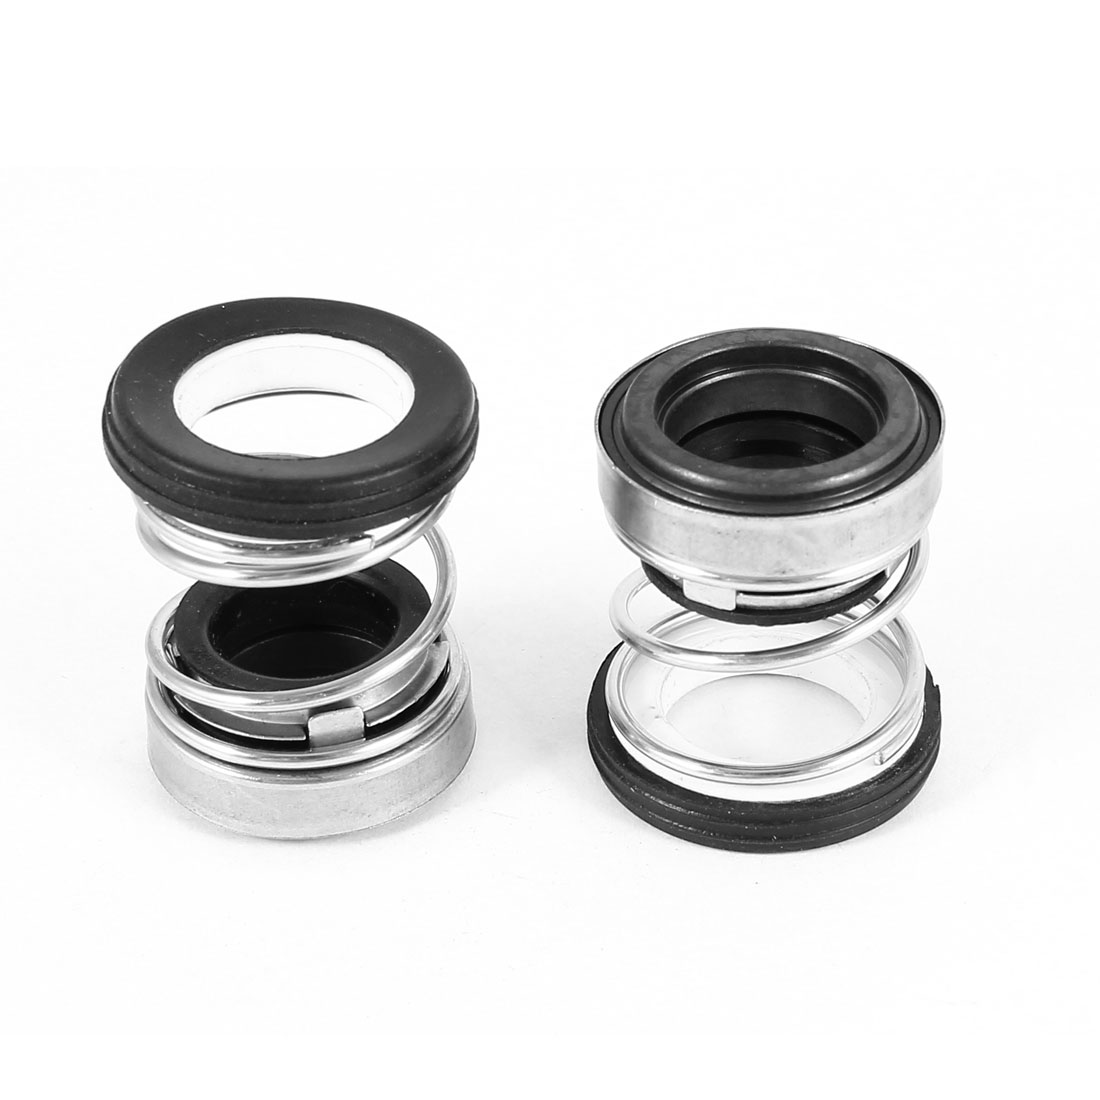 2pcs Ceramic Ring 14mm Cer Dia Single Coil Spring Rubber Bellows Mechanical Seal for Water Pumps